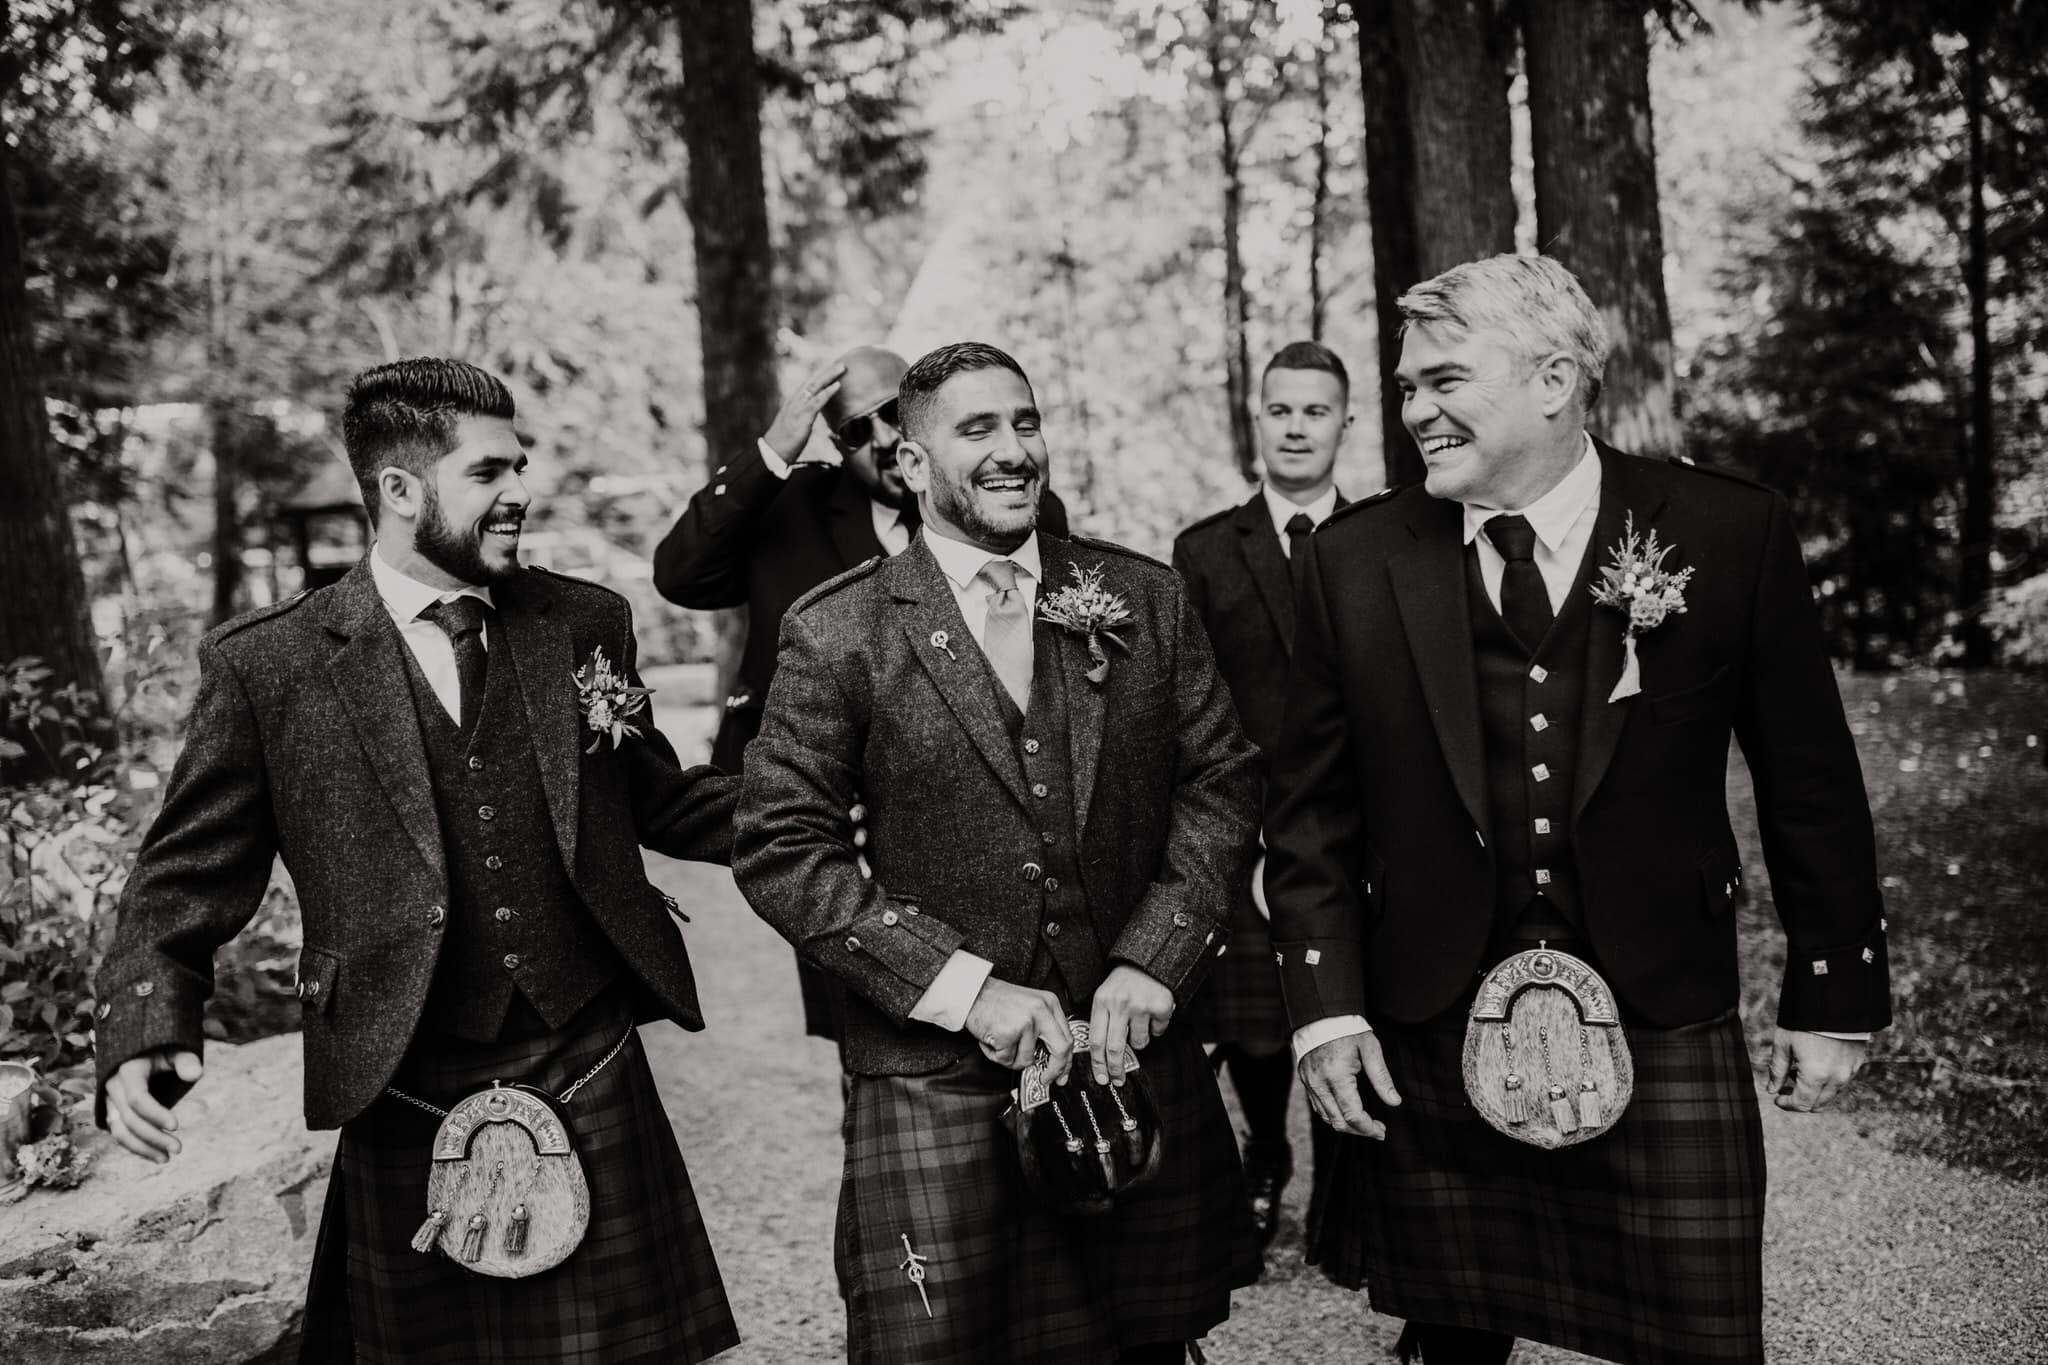 Black and white photo of groomsmen leading groom through the forest. Destination wedding photographer Brent Calis.